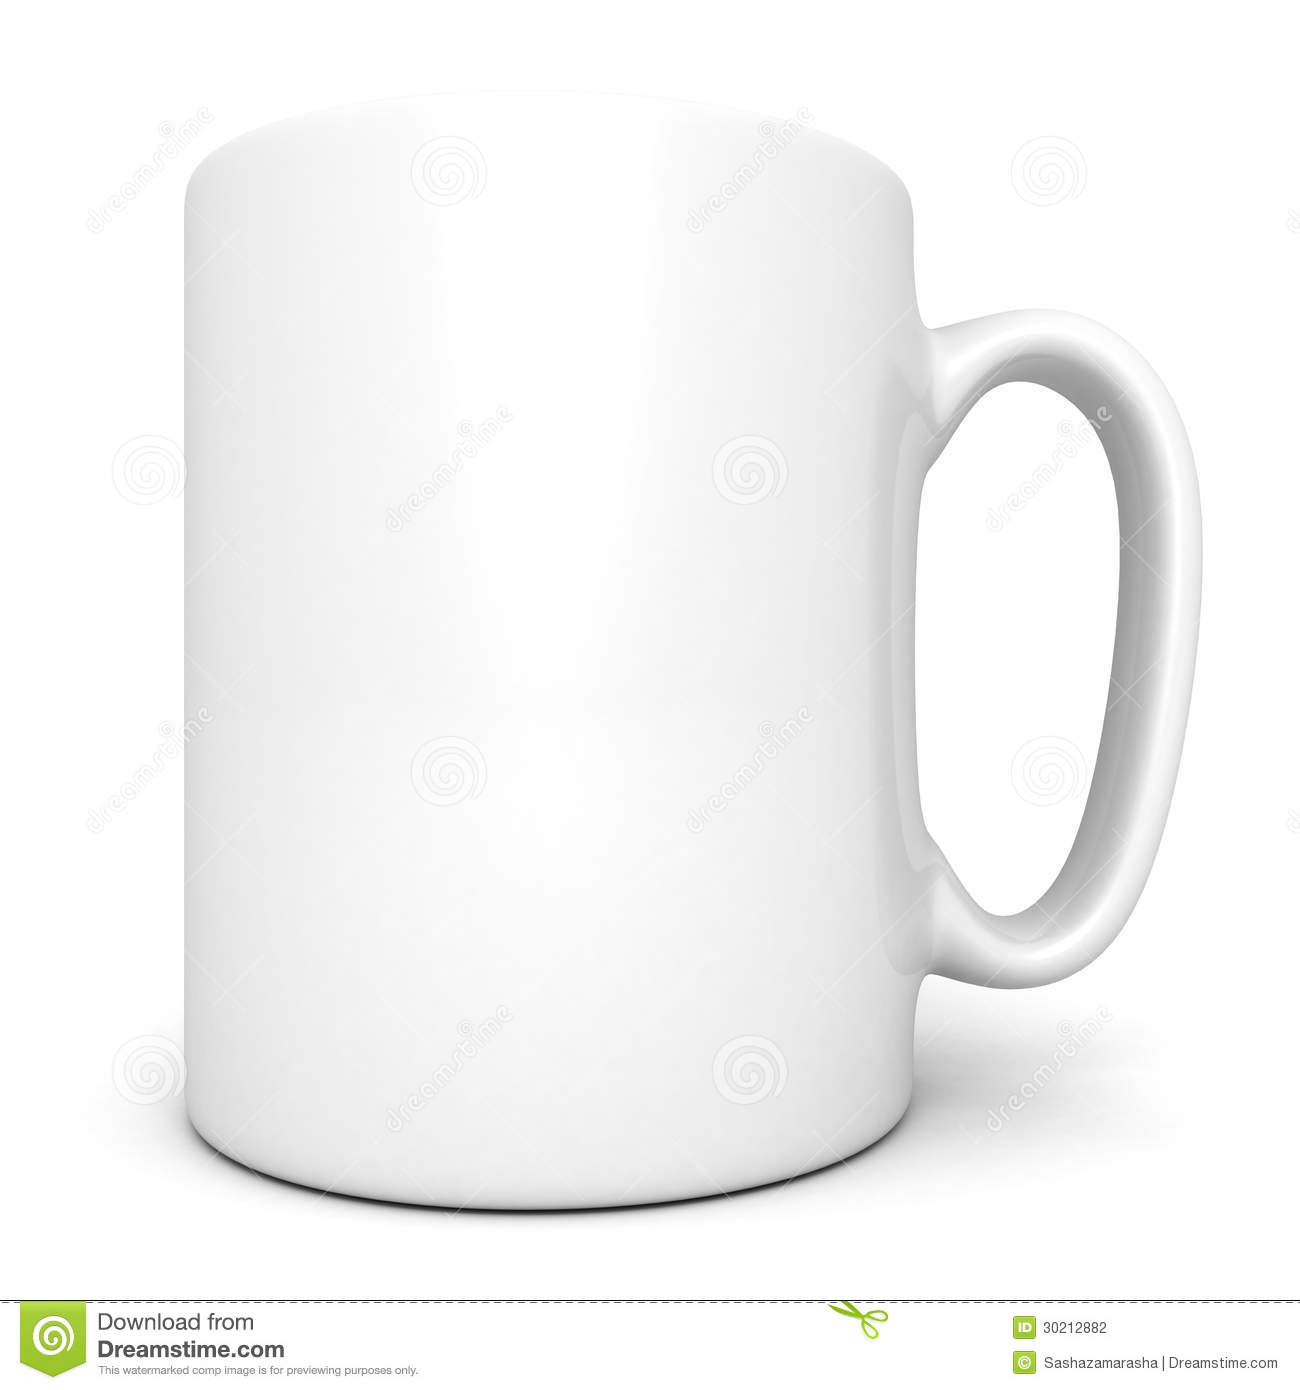 White Ceramic Coffee Cups White Ceramic Coffee Mug On White Stock Photography